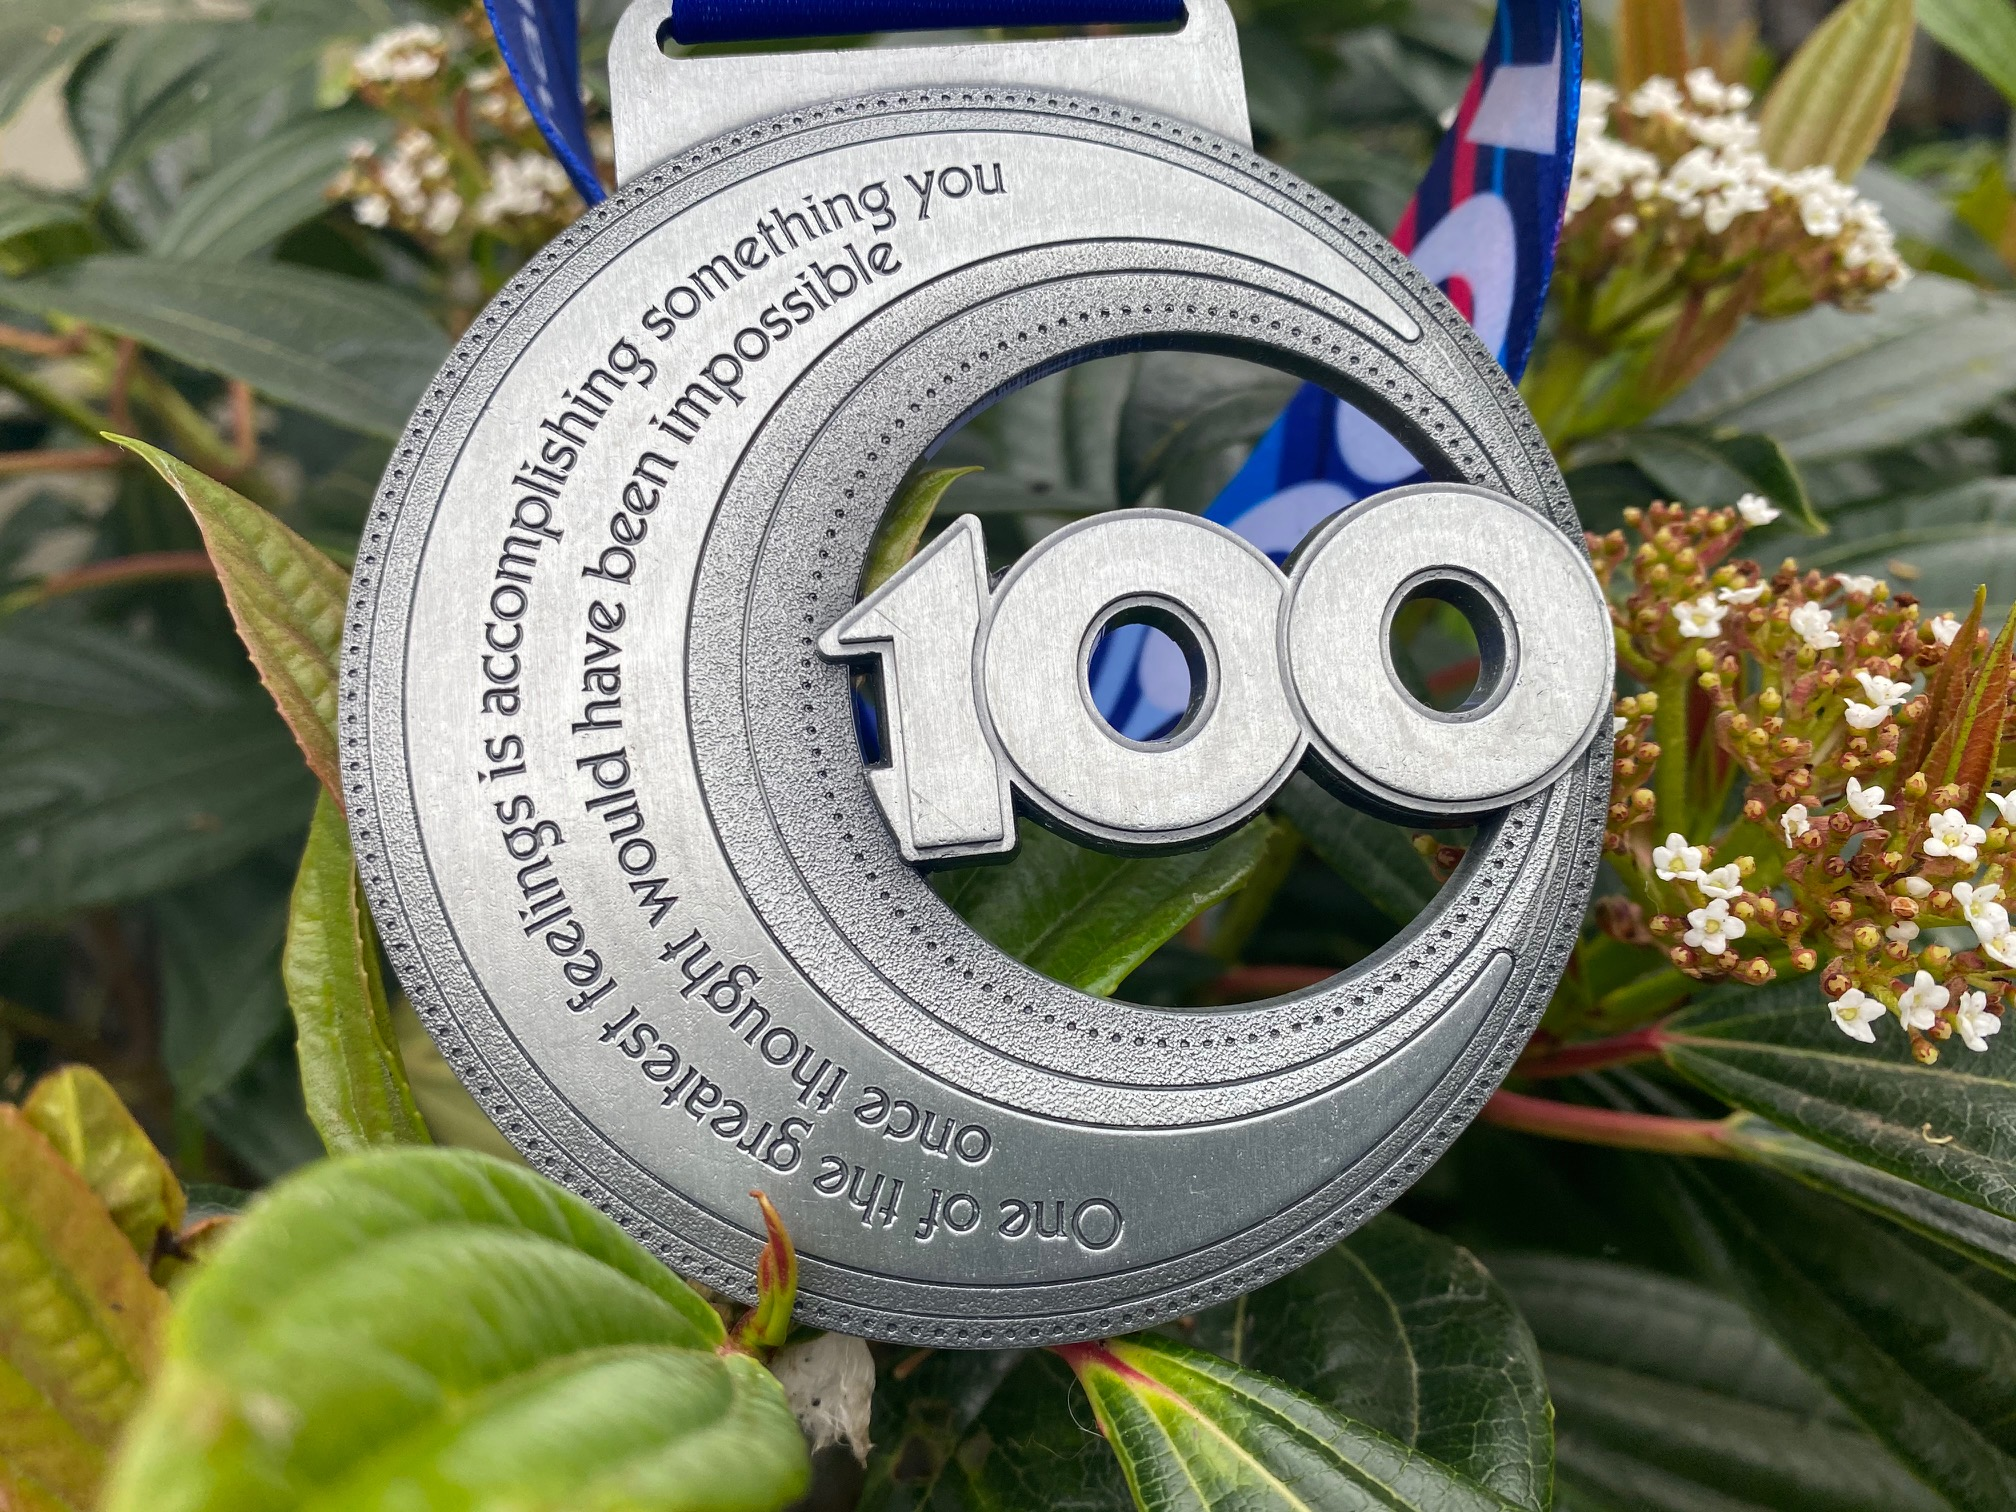 The Century - Virtual lockdown challenge